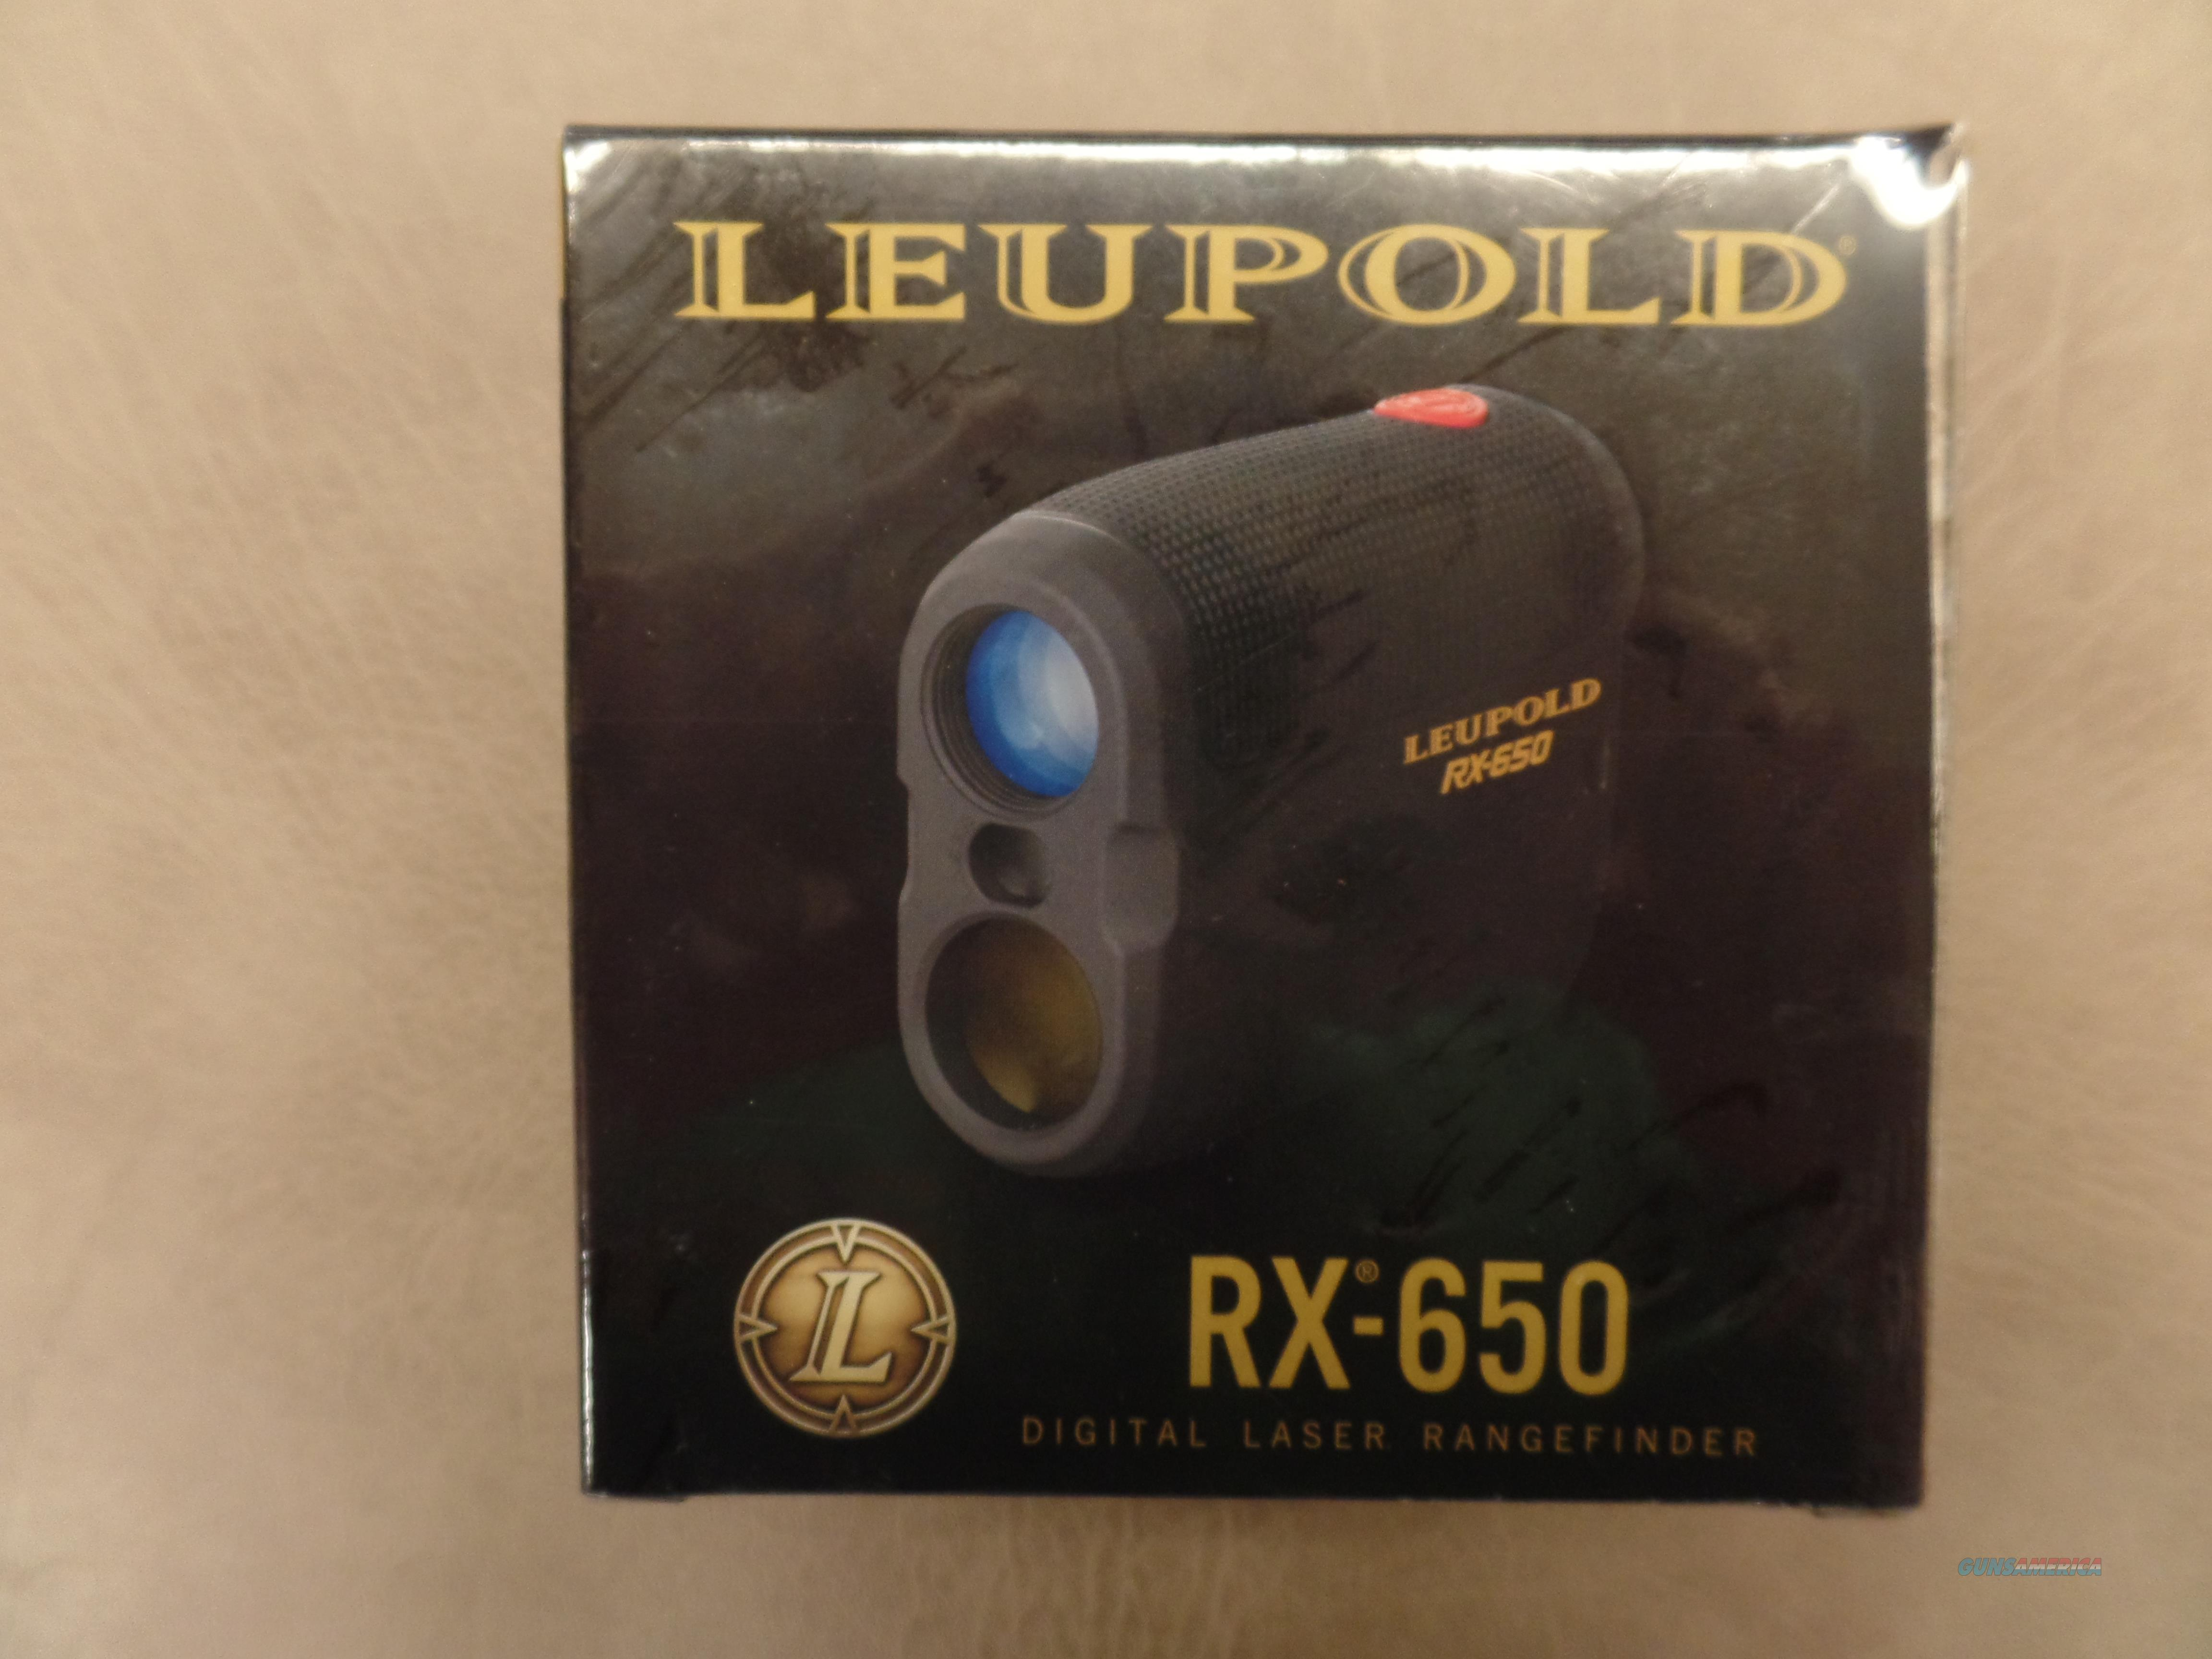 Leupold RX-650 Digital Laser Rangefinder  Non-Guns > Scopes/Mounts/Rings & Optics > Non-Scope Optics > Rangefinders